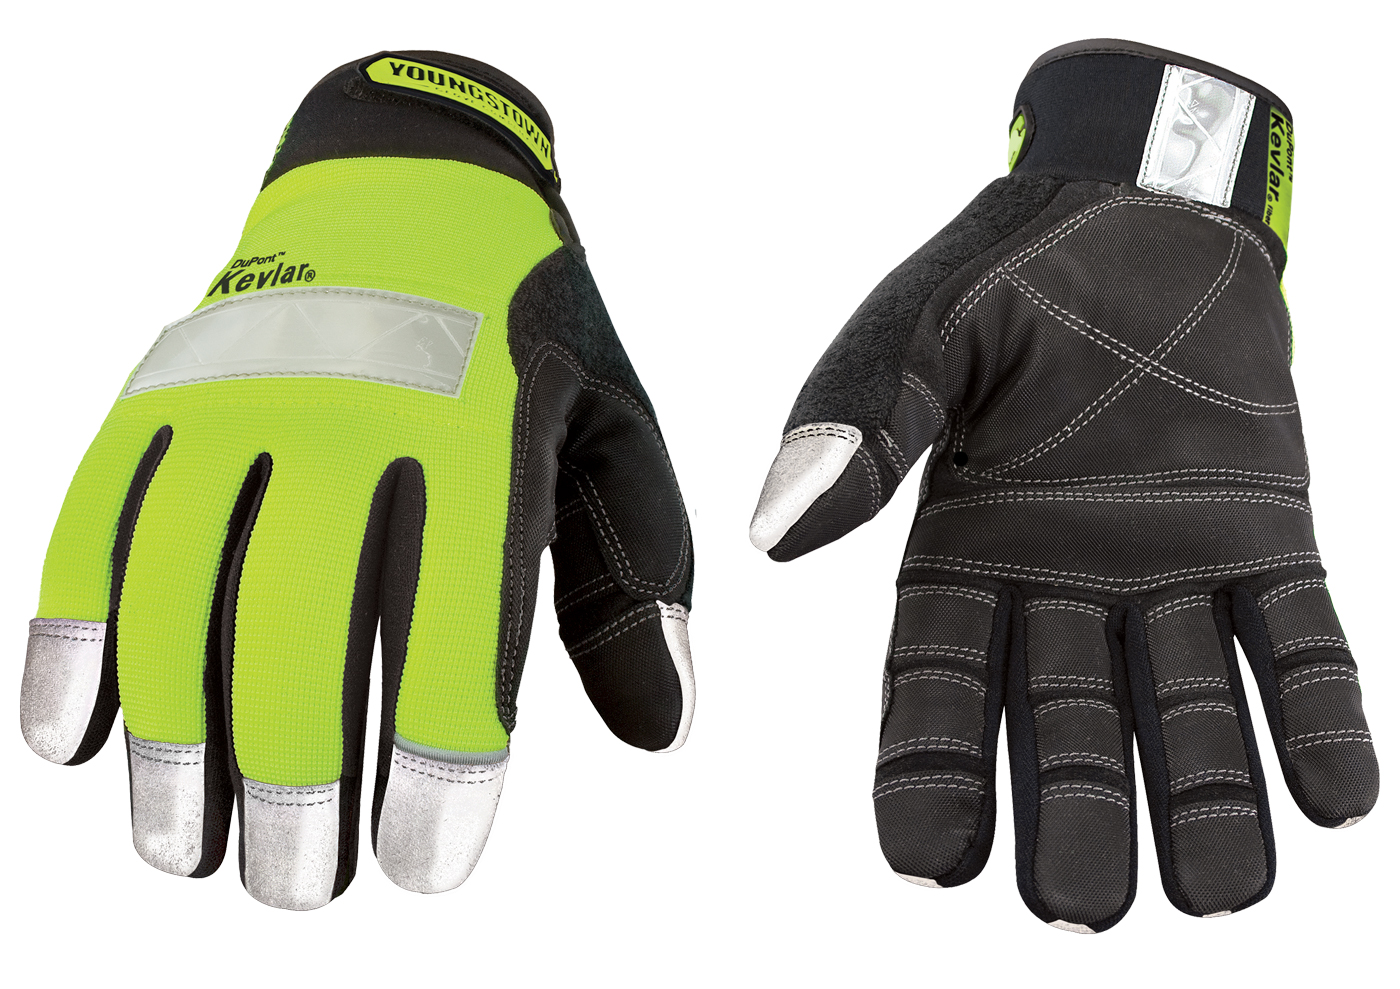 Youngstown Glove Safety Lime Glove Lined with Kevlar XXLarge